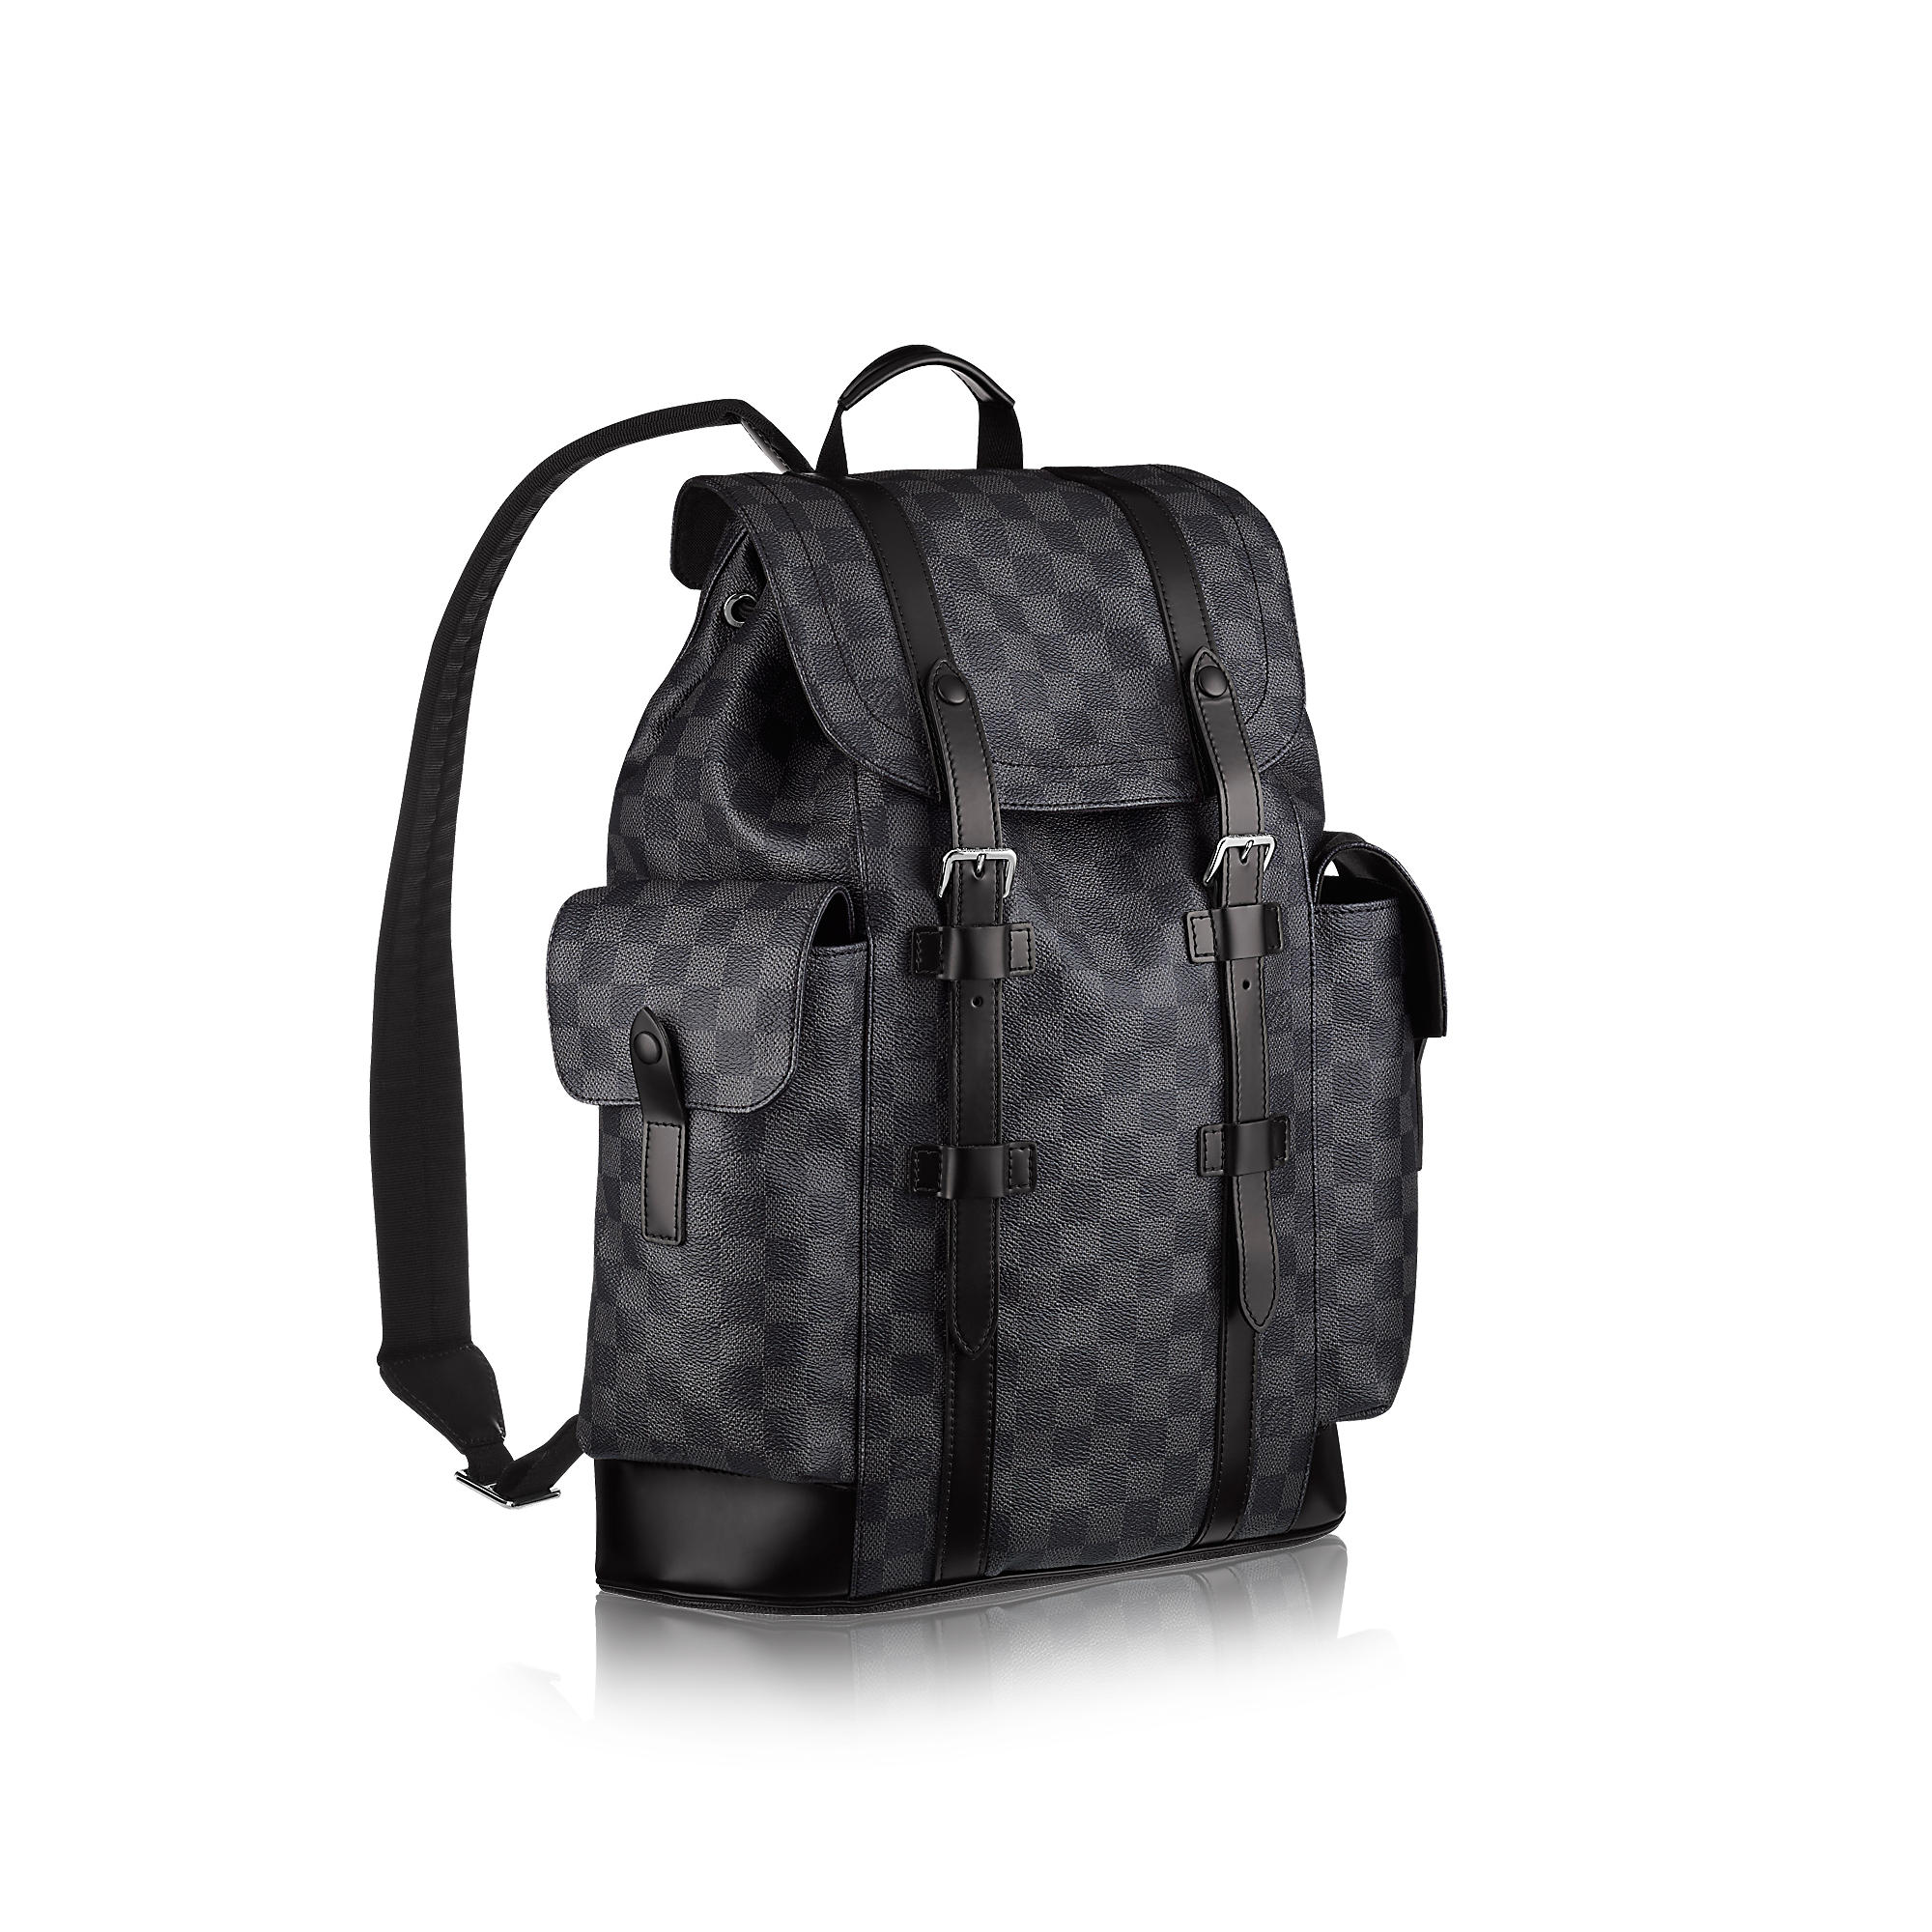 964702cfef7 Christopher PM Backpack Black Damier Graphite